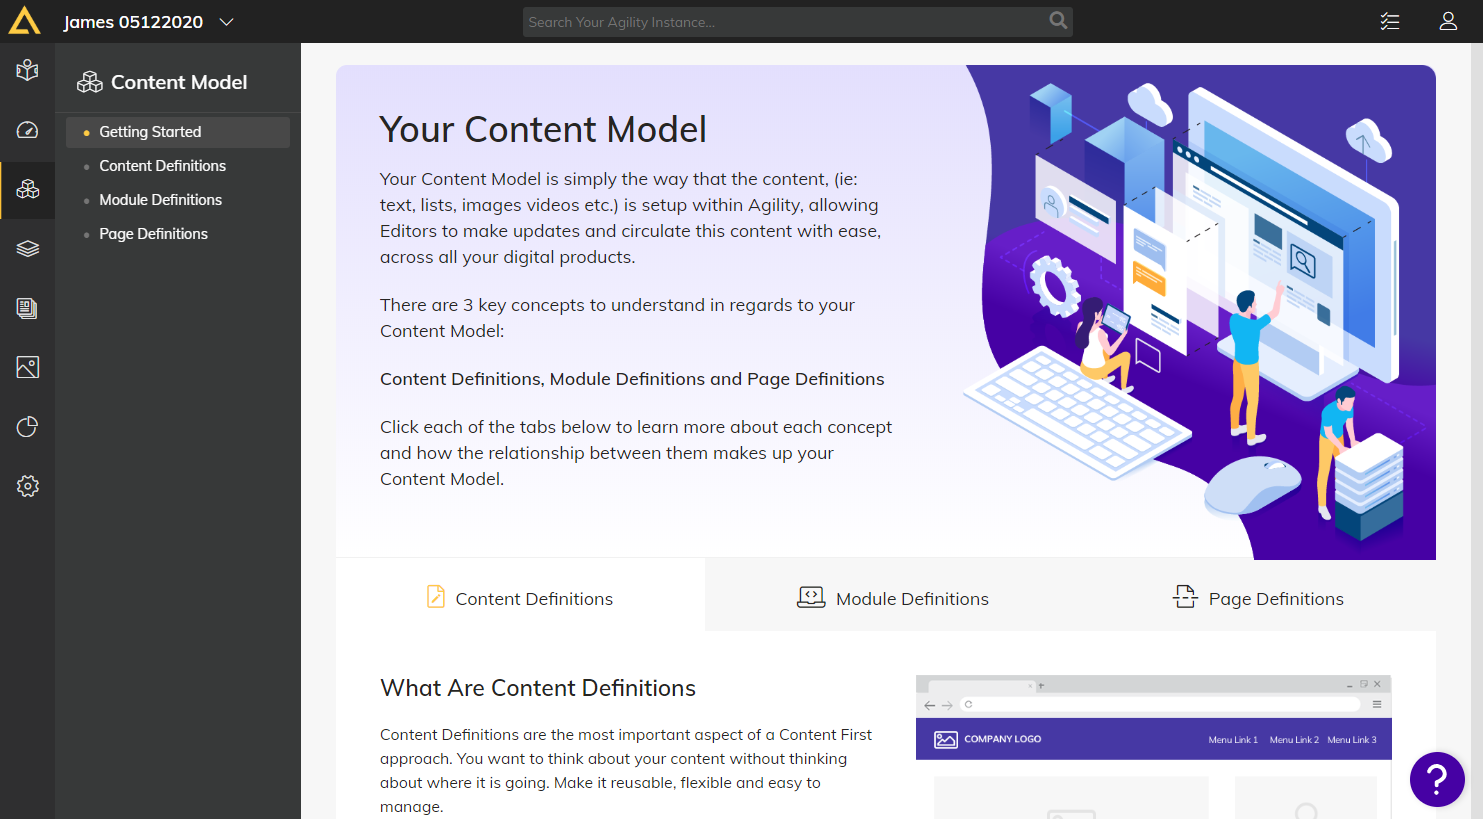 Content model system in Agility